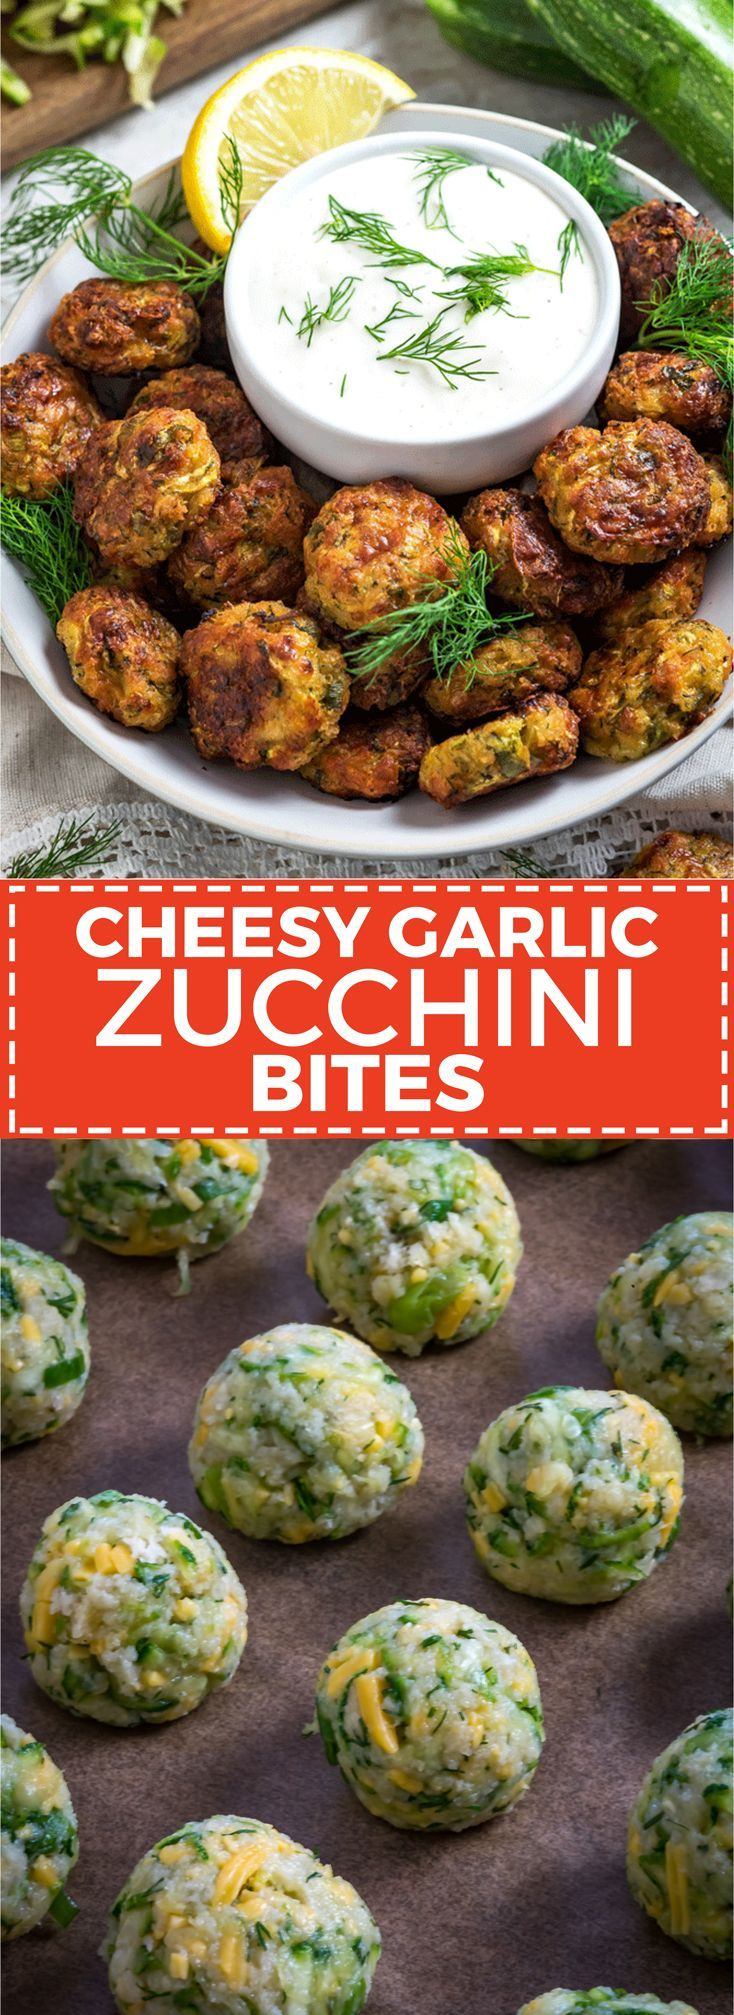 Cheesy Garlic Zucchini Bites. These are easy to make, super flavorful, and baked so they're much healthier than fritters! Serve 'em as snacks, appetizers, or even a side dish!